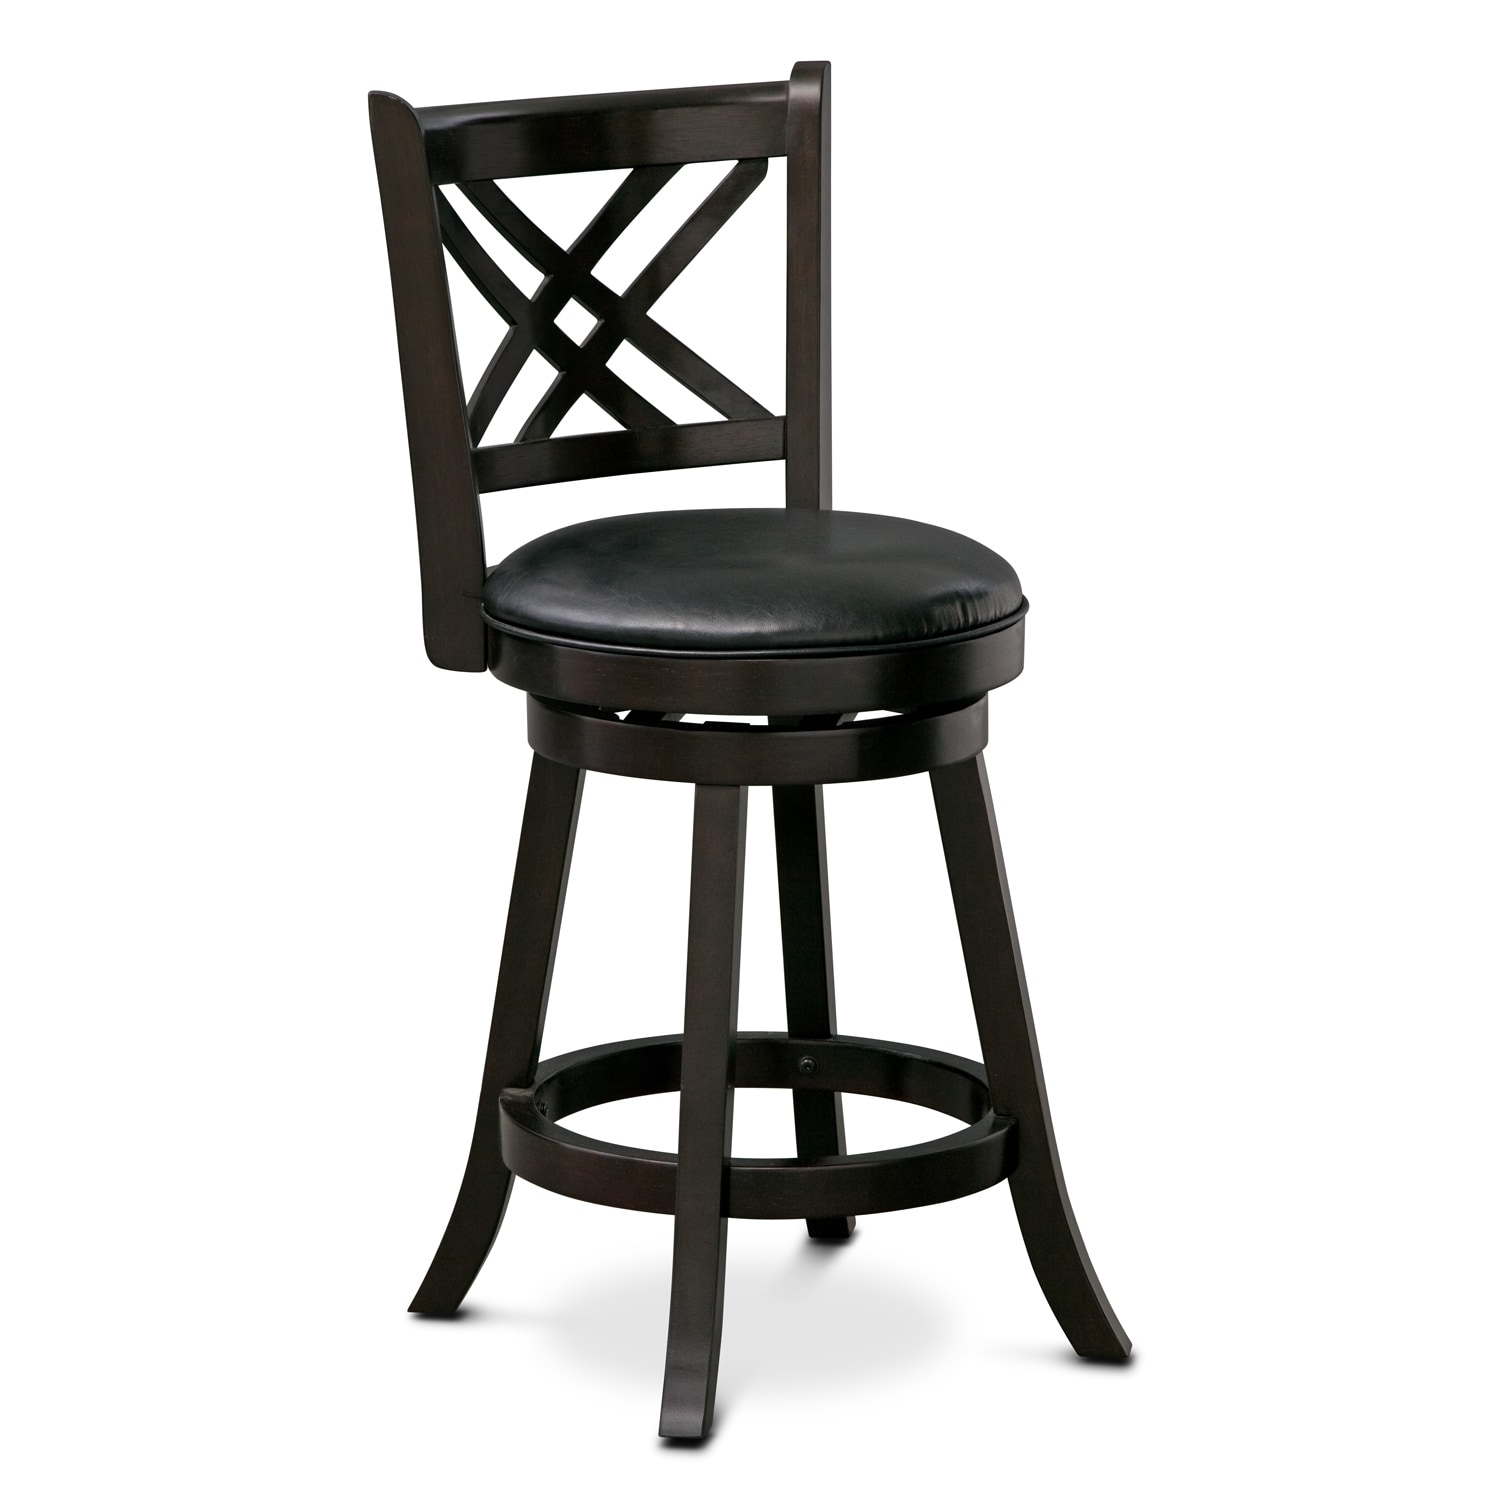 Reilly counter height stool - Average height of bar stools ...